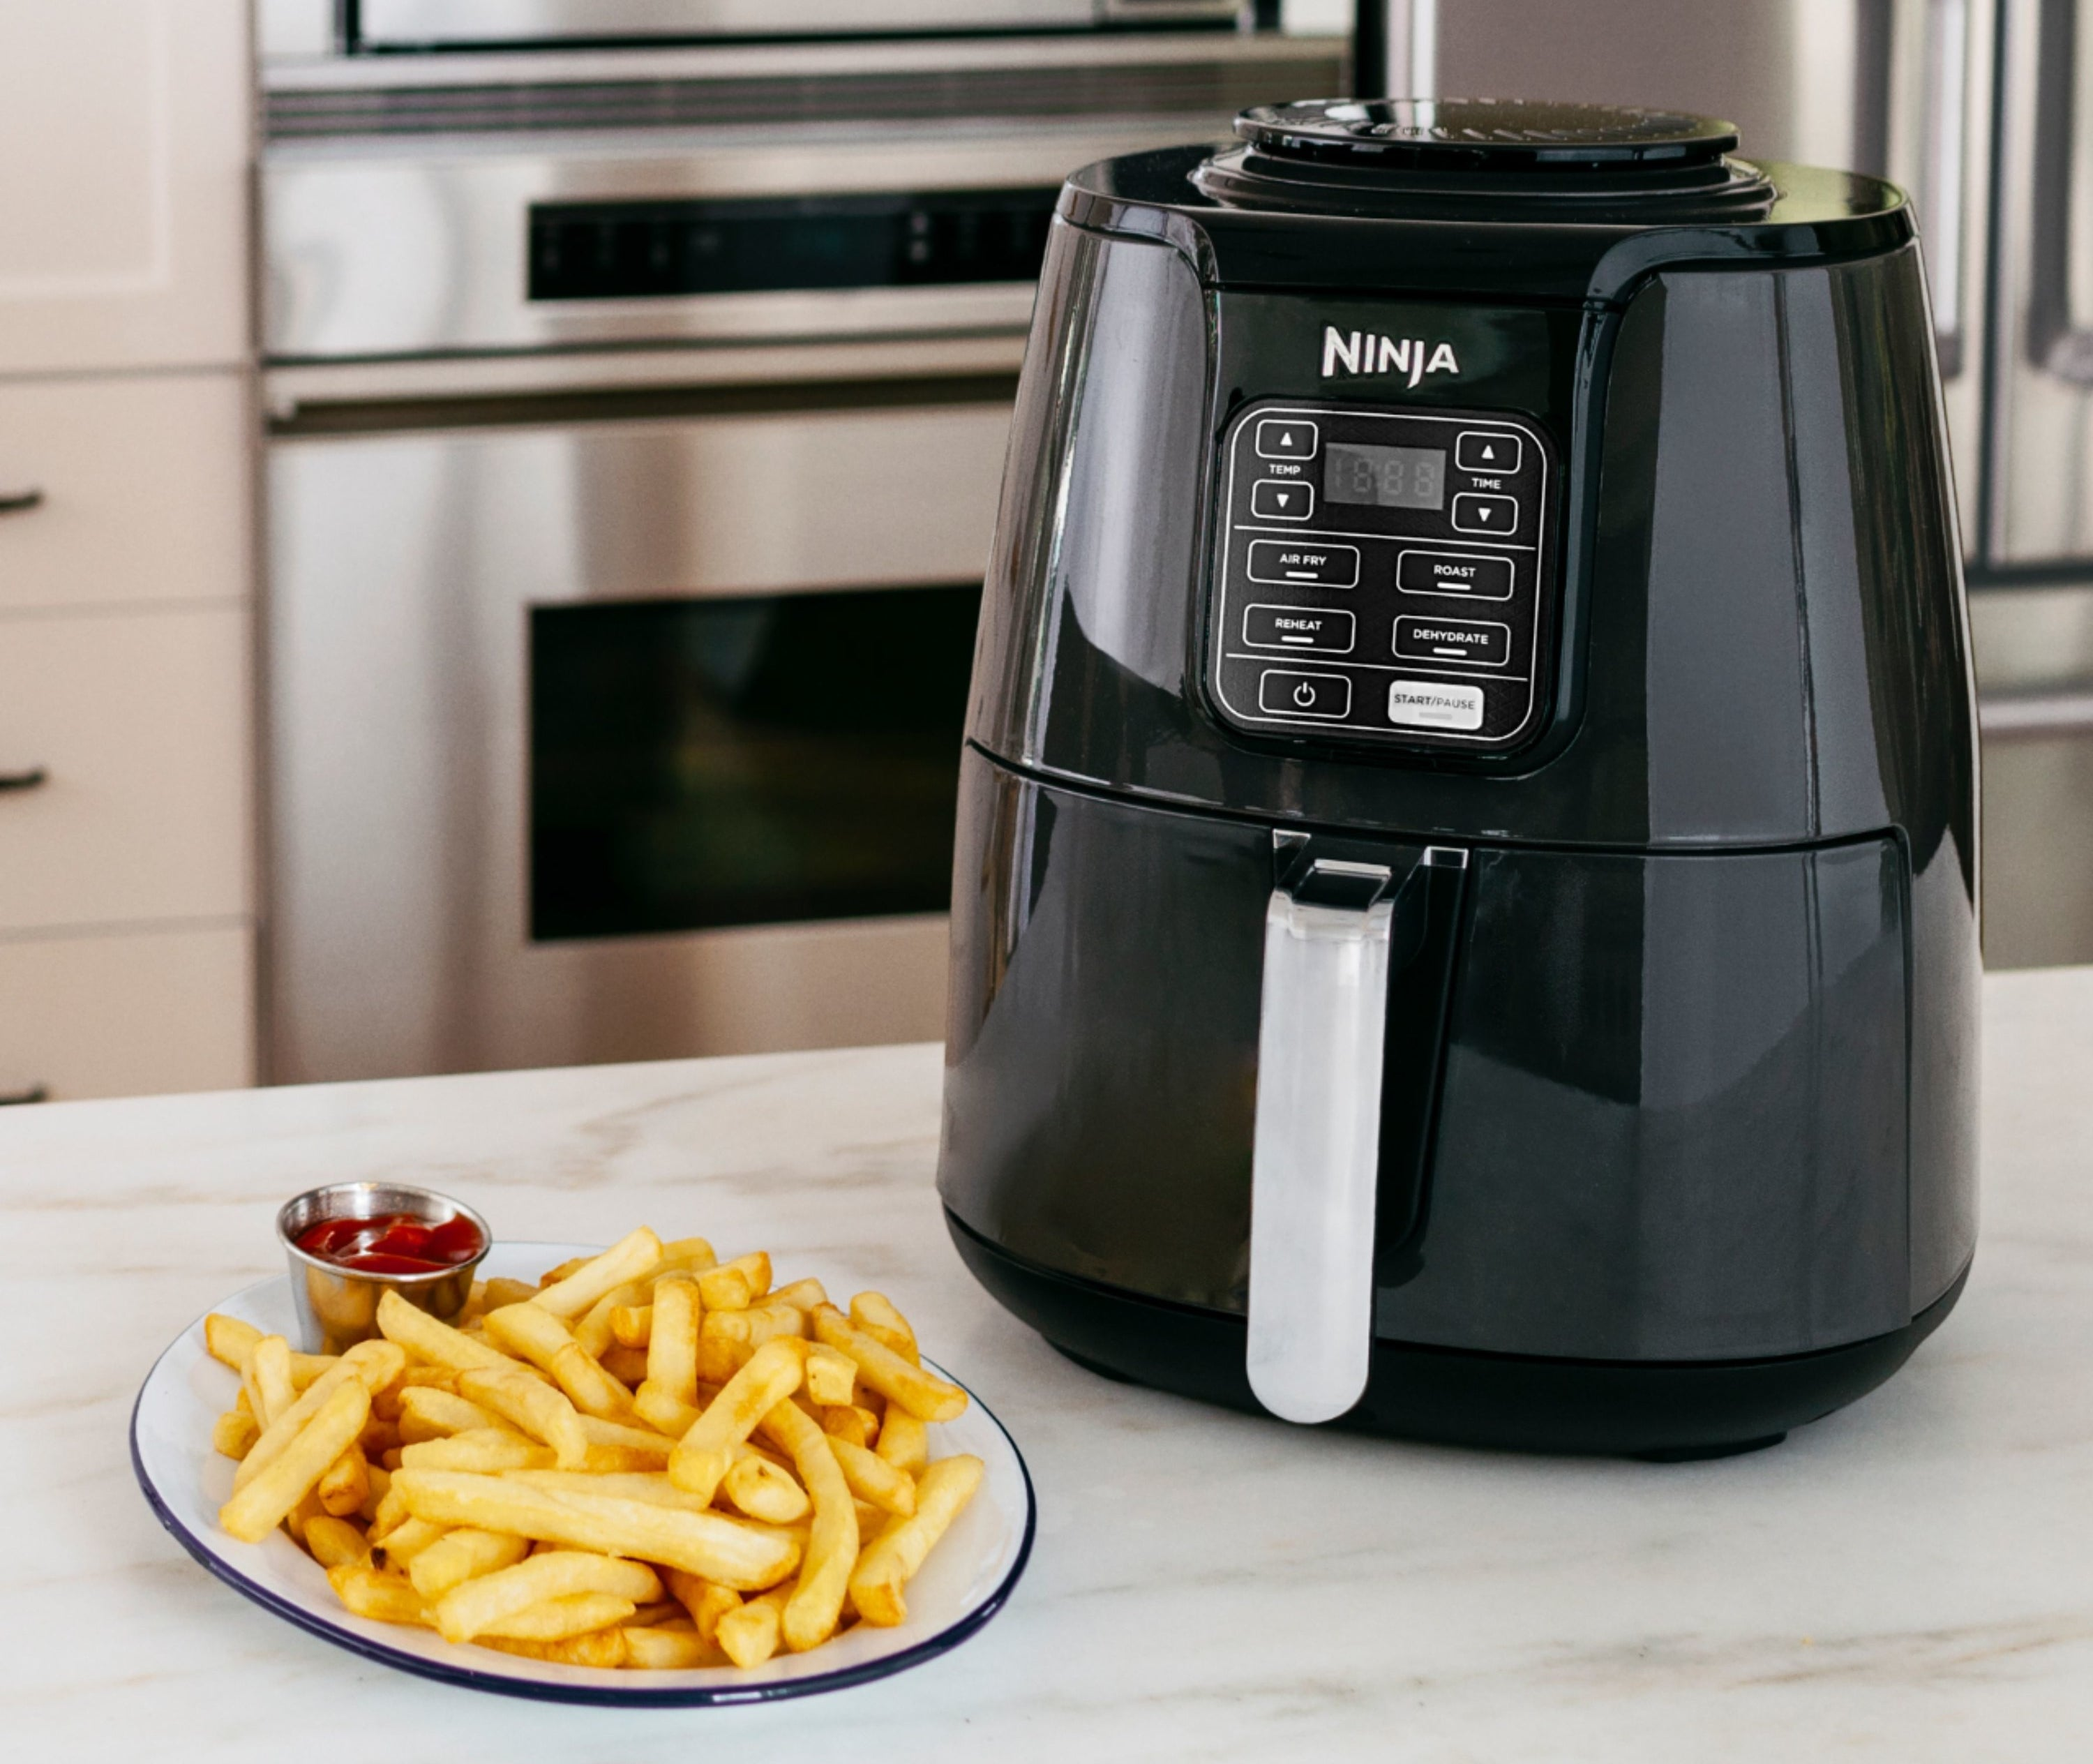 the air fryer next to a plate of french fries